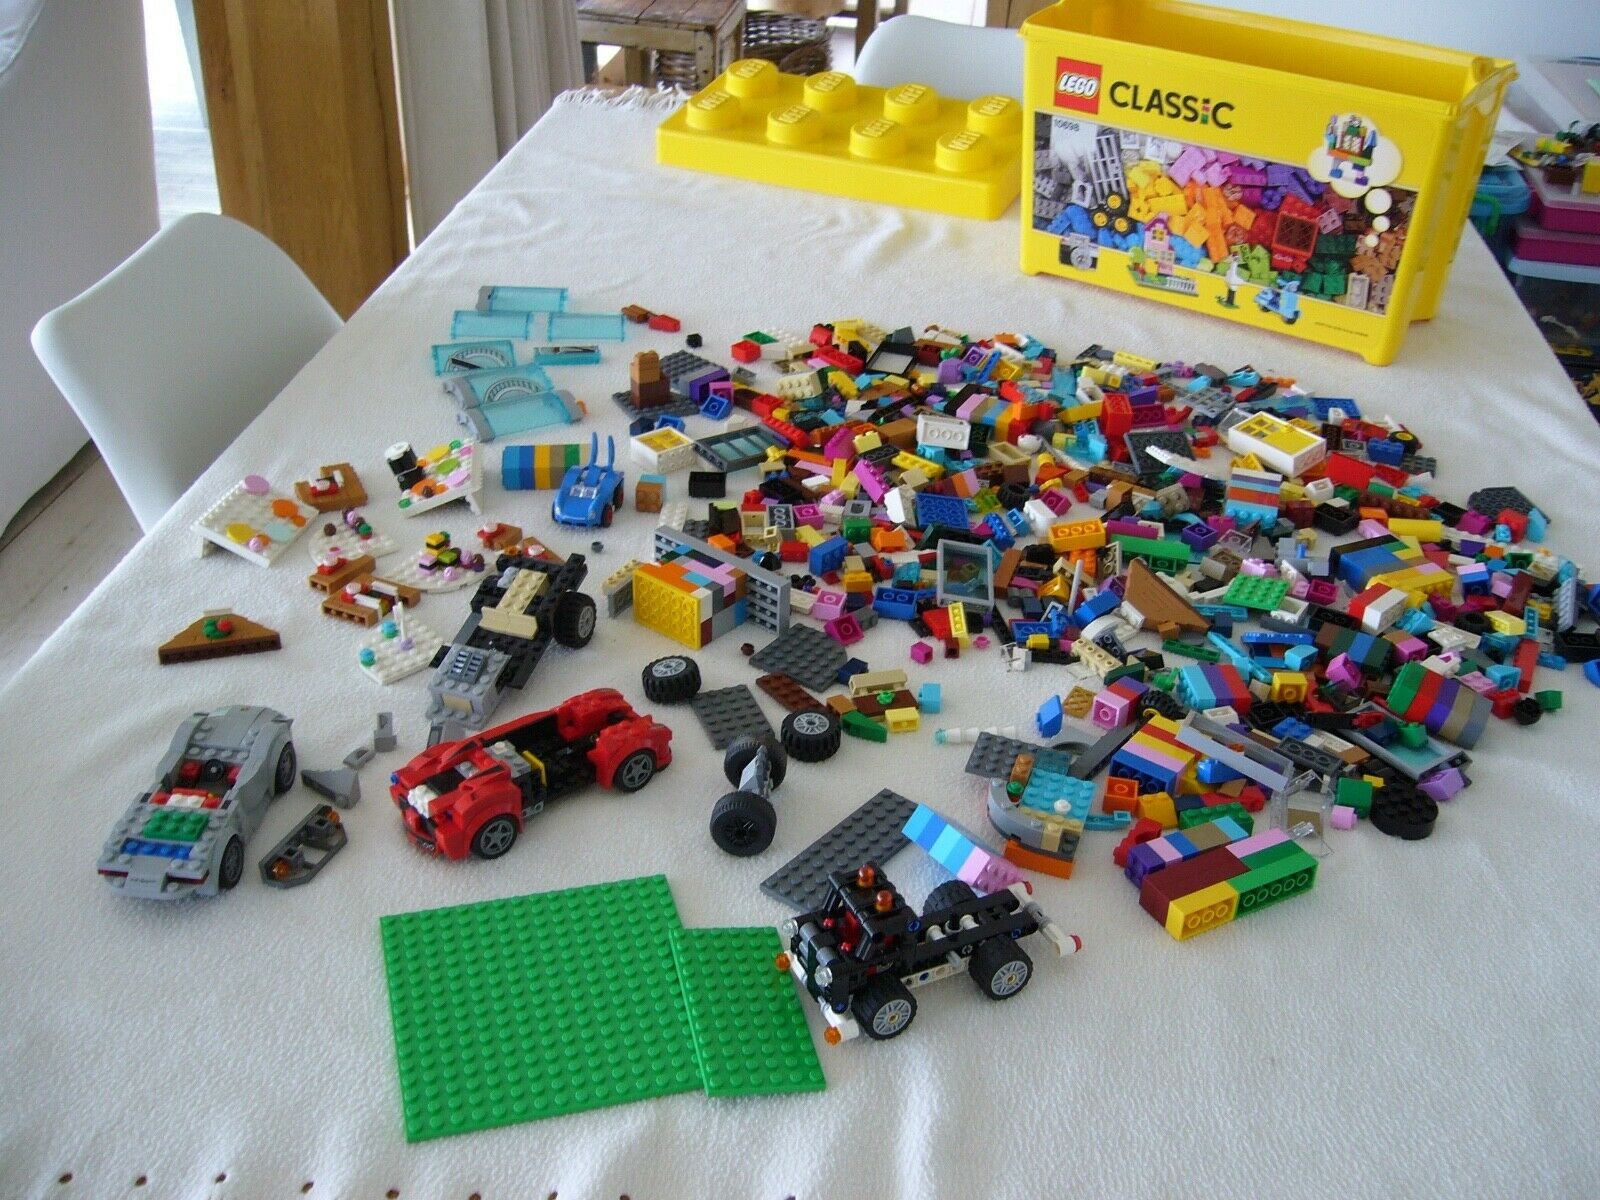 LEGO CLASSIC 10688 BOX WITH QUANTITY OF MIXED LEGO, 2.1 K WITH BOX. ddddd